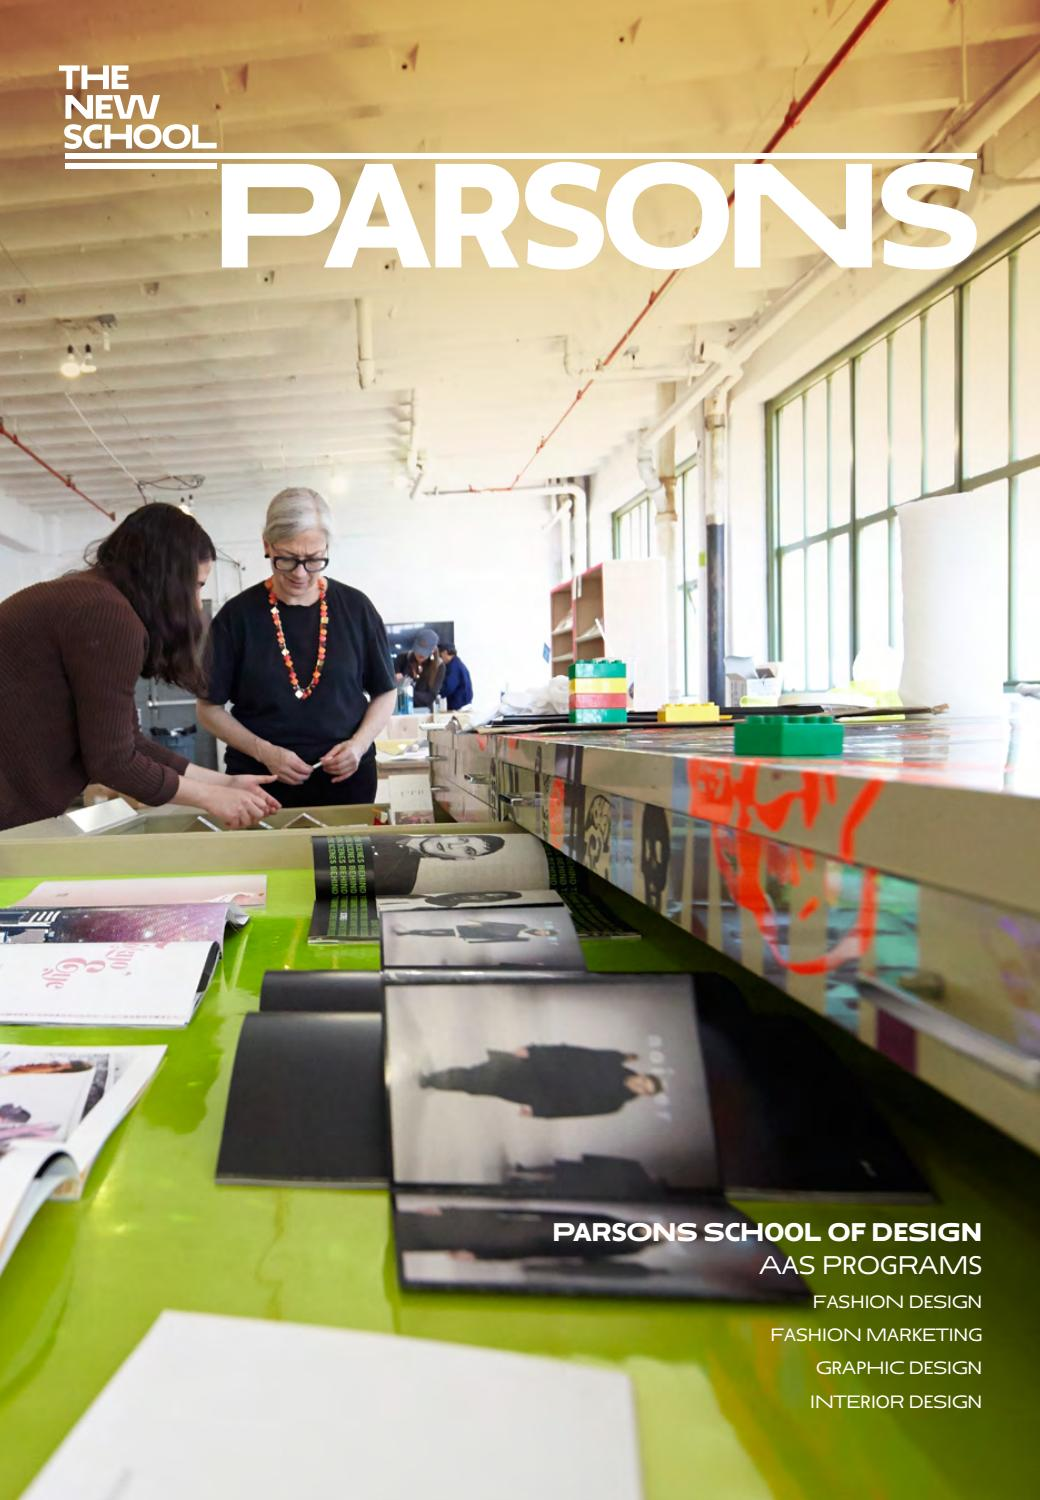 parsons aas graphic interior marketing become sign associate issuu